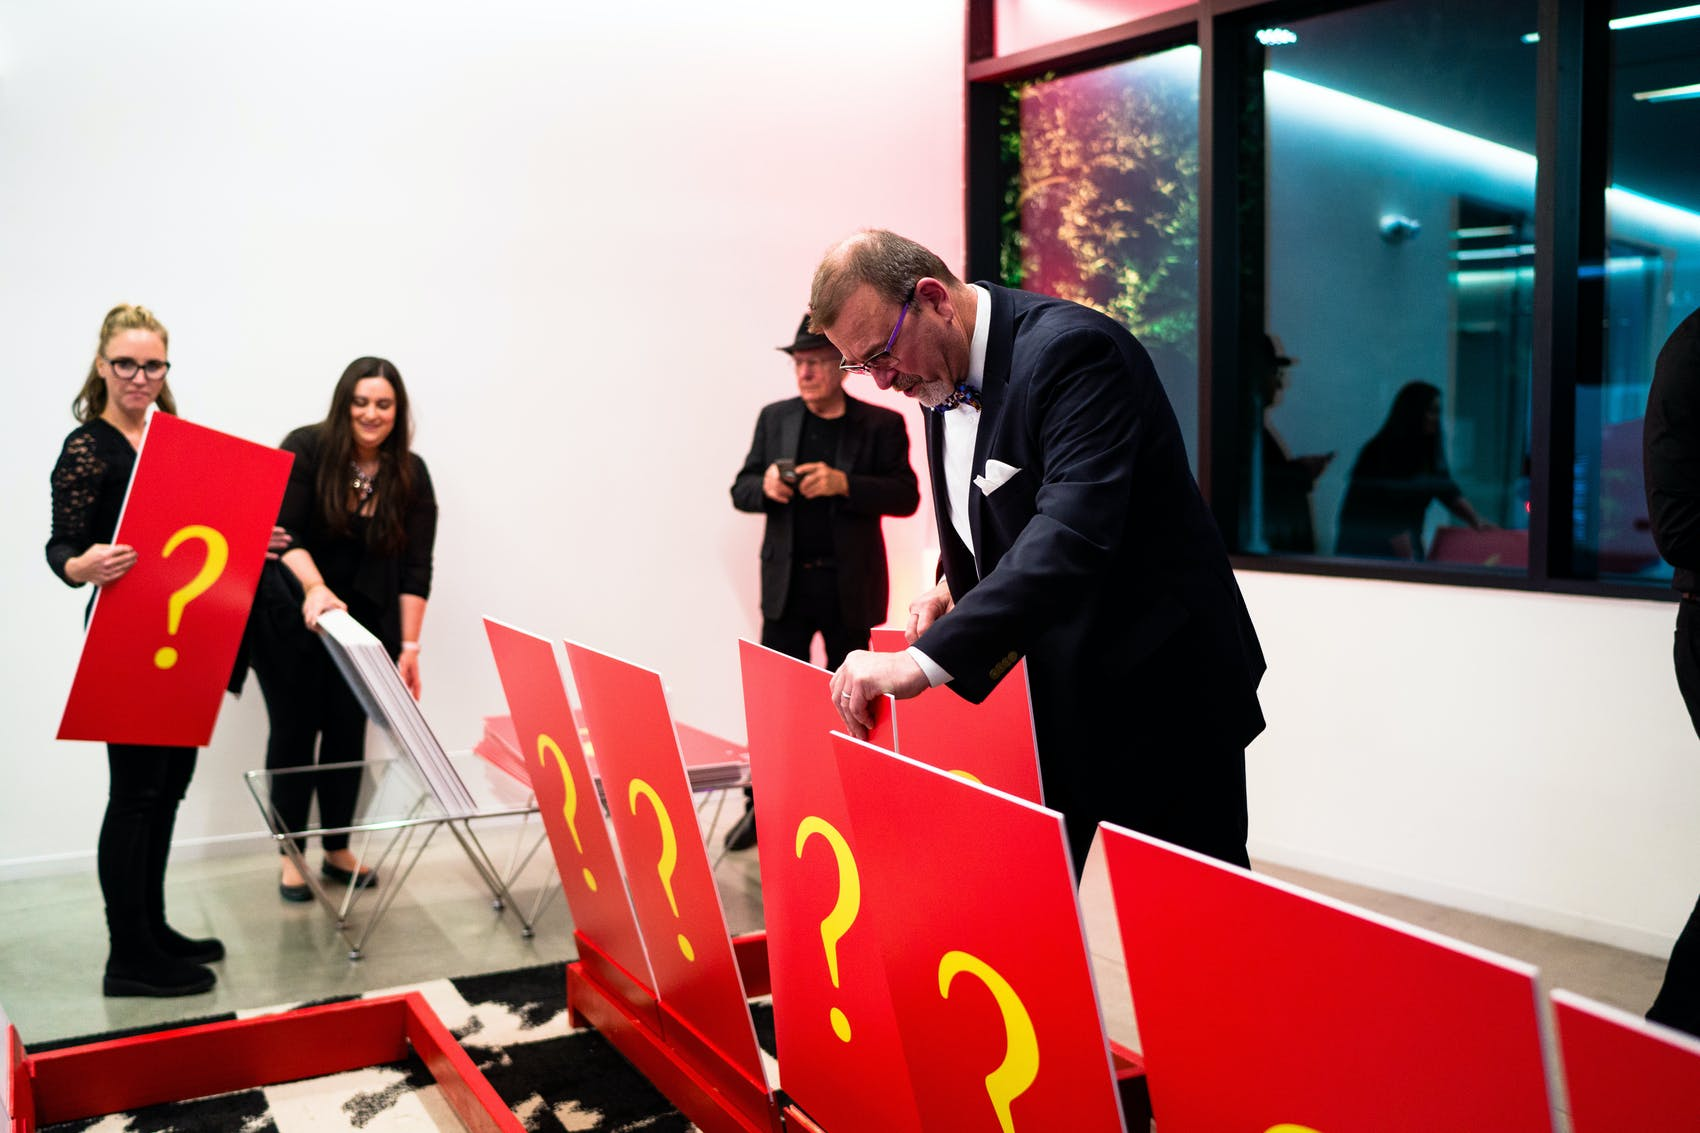 giant guess who game at corporate event